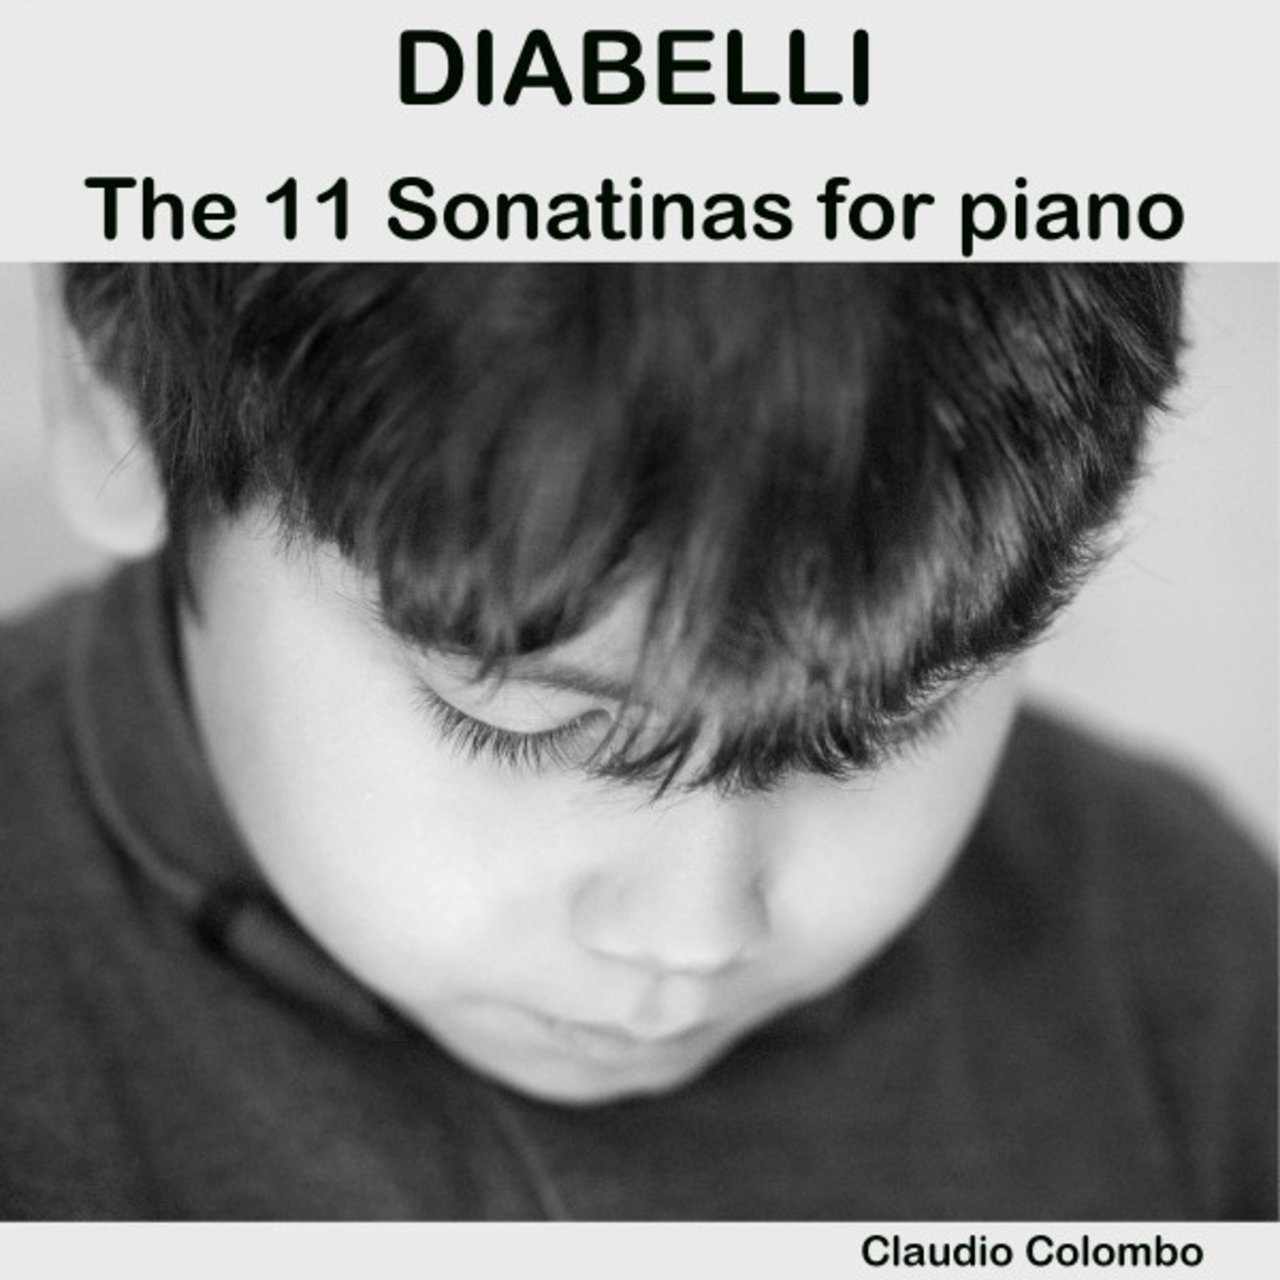 Diabelli: The 11 Sonatinas for Piano